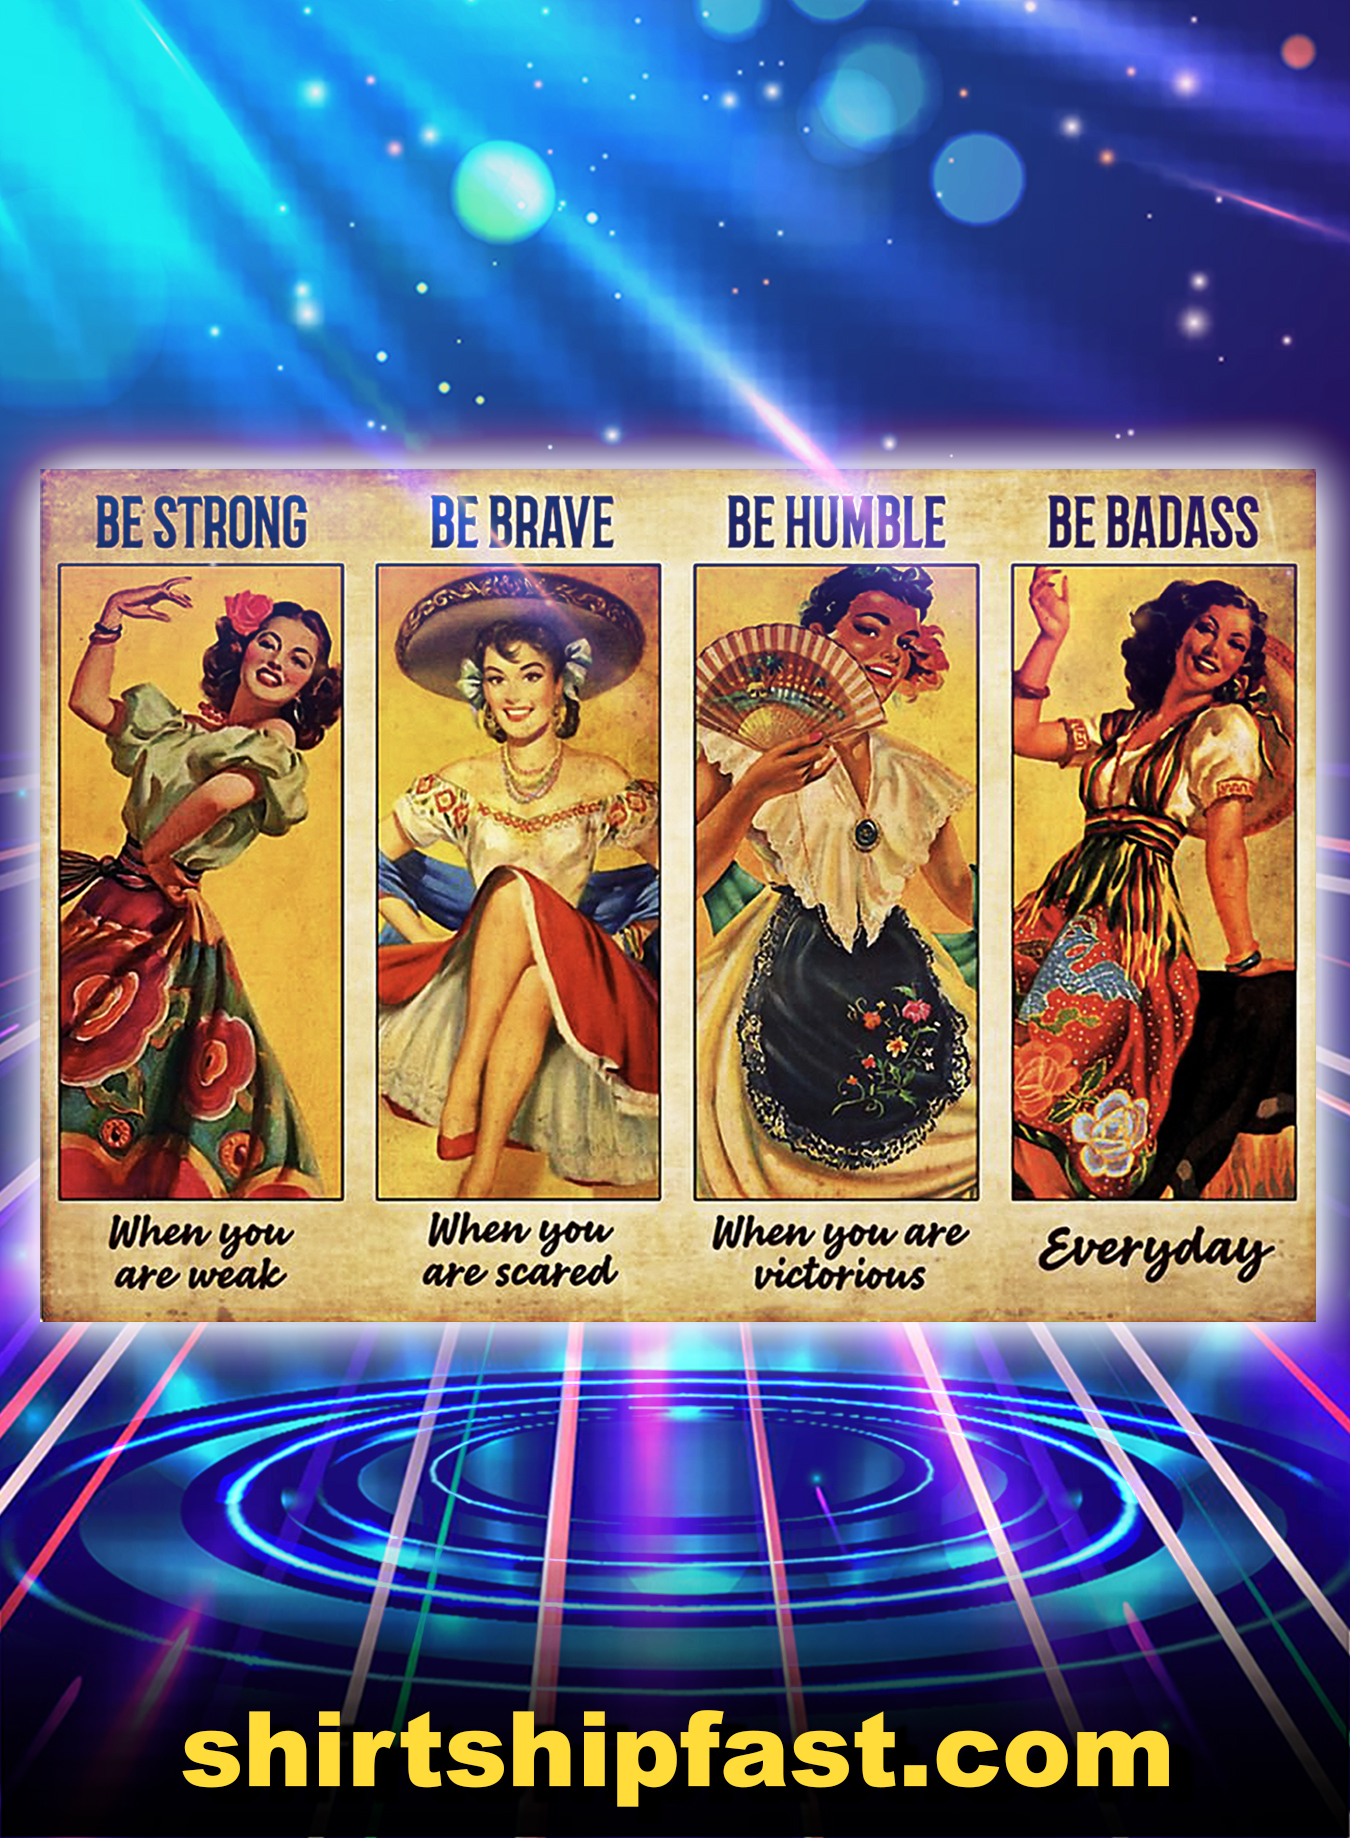 Mexican culture be strong be brave be humble be badass poster - A3